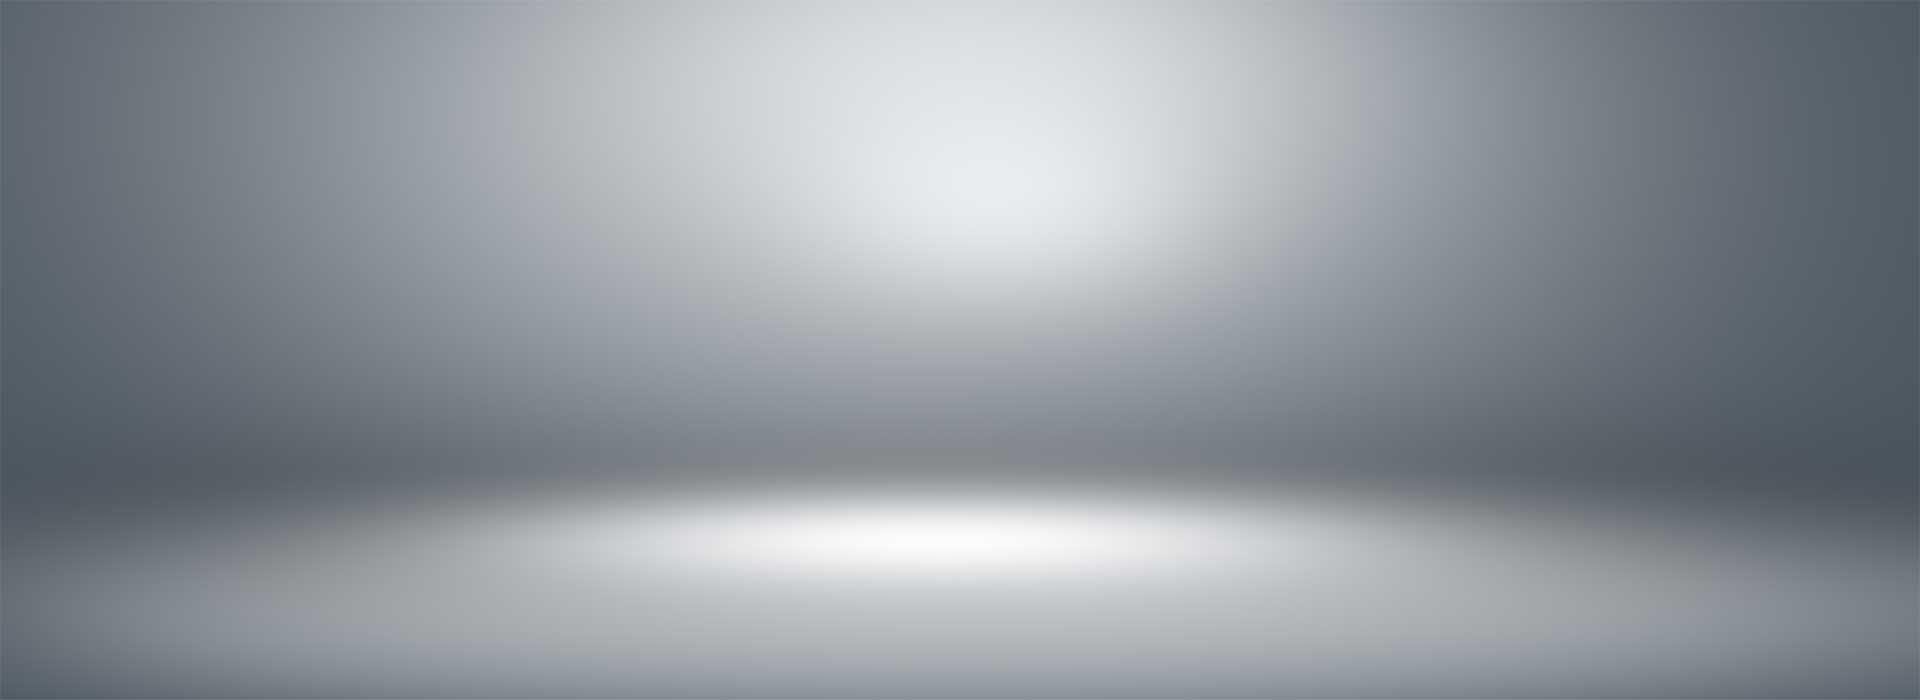 grey-background